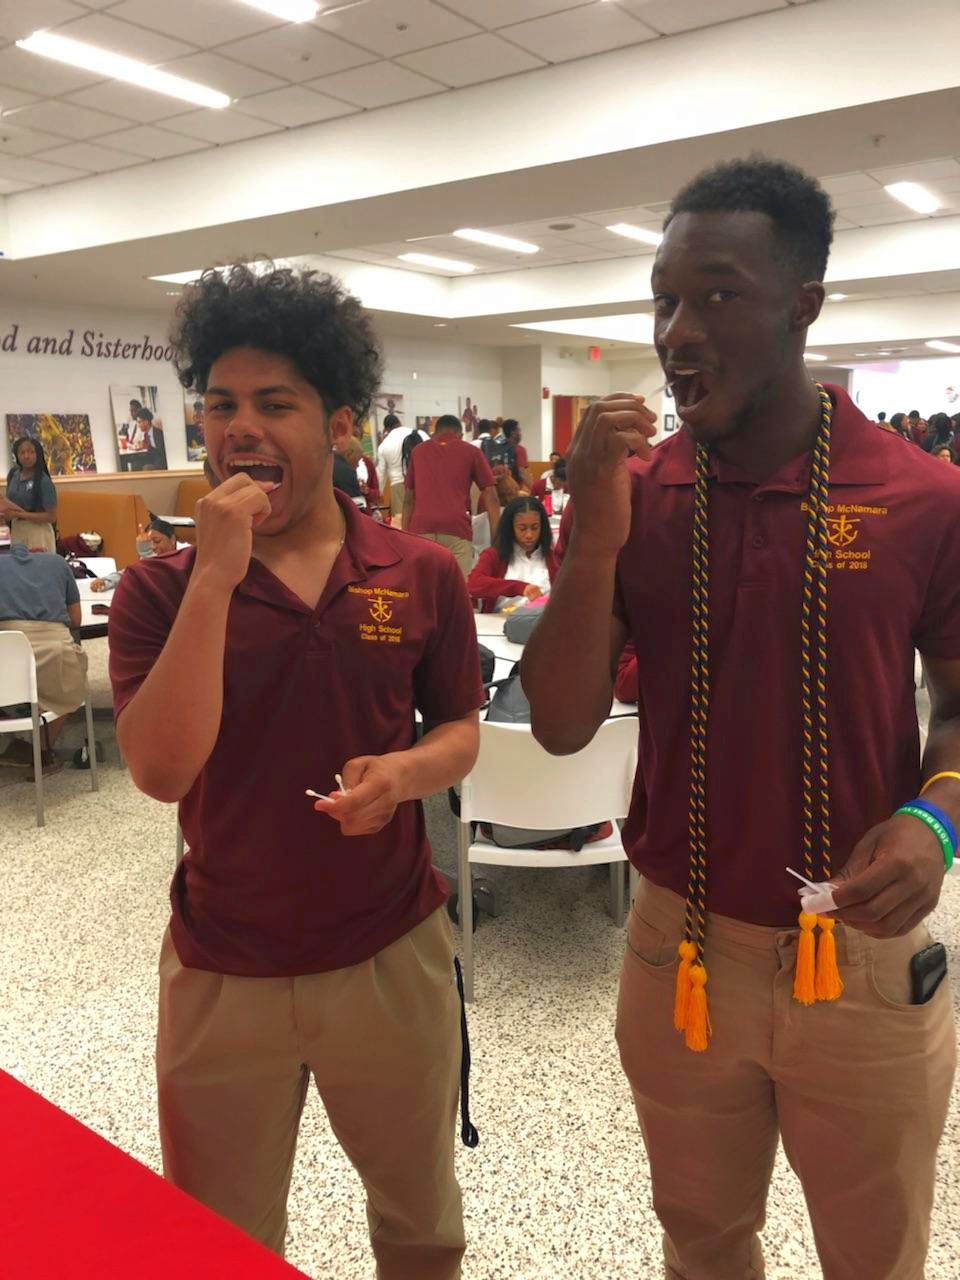 Seniors Jordan Daugherty and Arinze Okeke lead the way by being the first to swab on Senior Swab Day 2018  with There Goes My Hero organization at BMHS